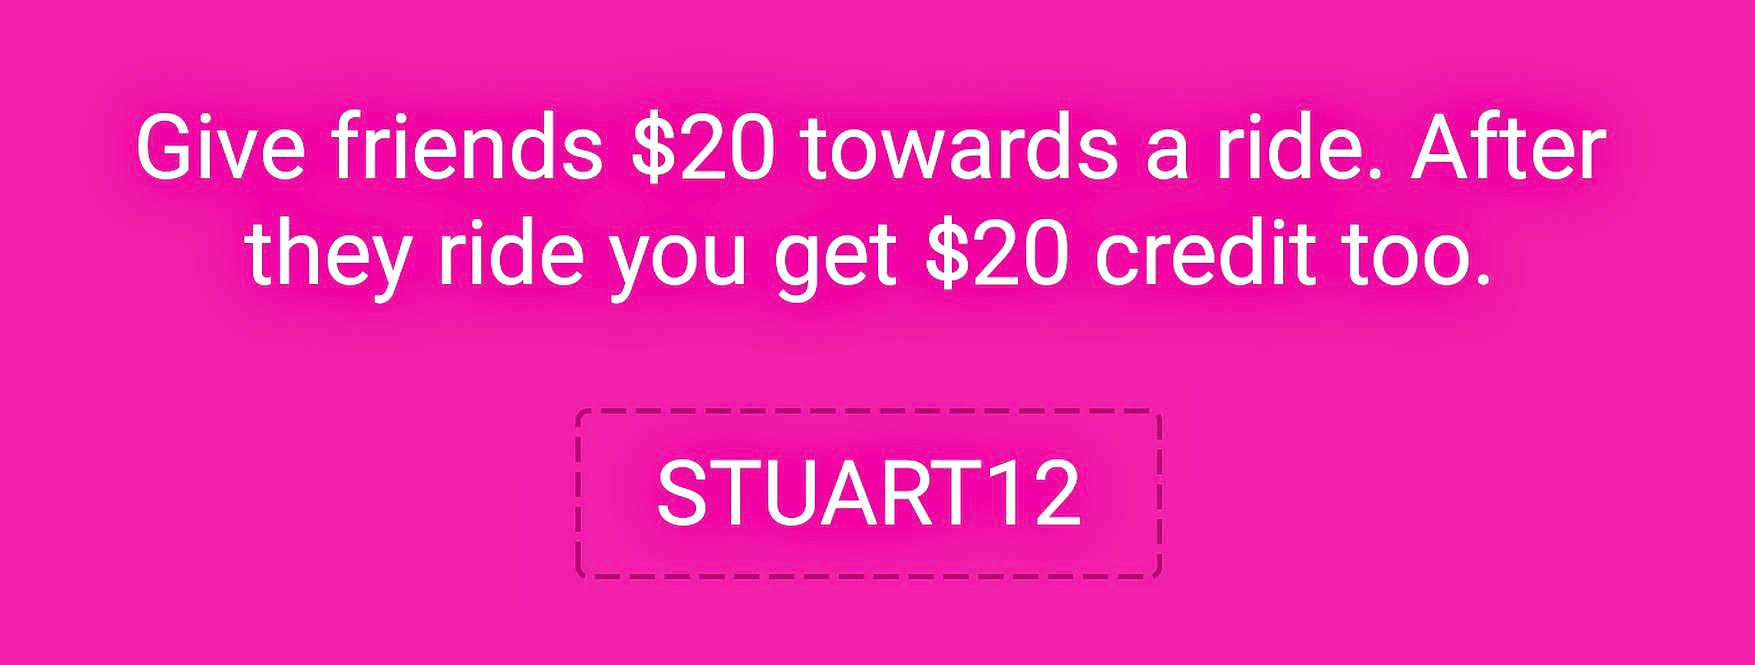 Lyft Code for credit $20 STUART12